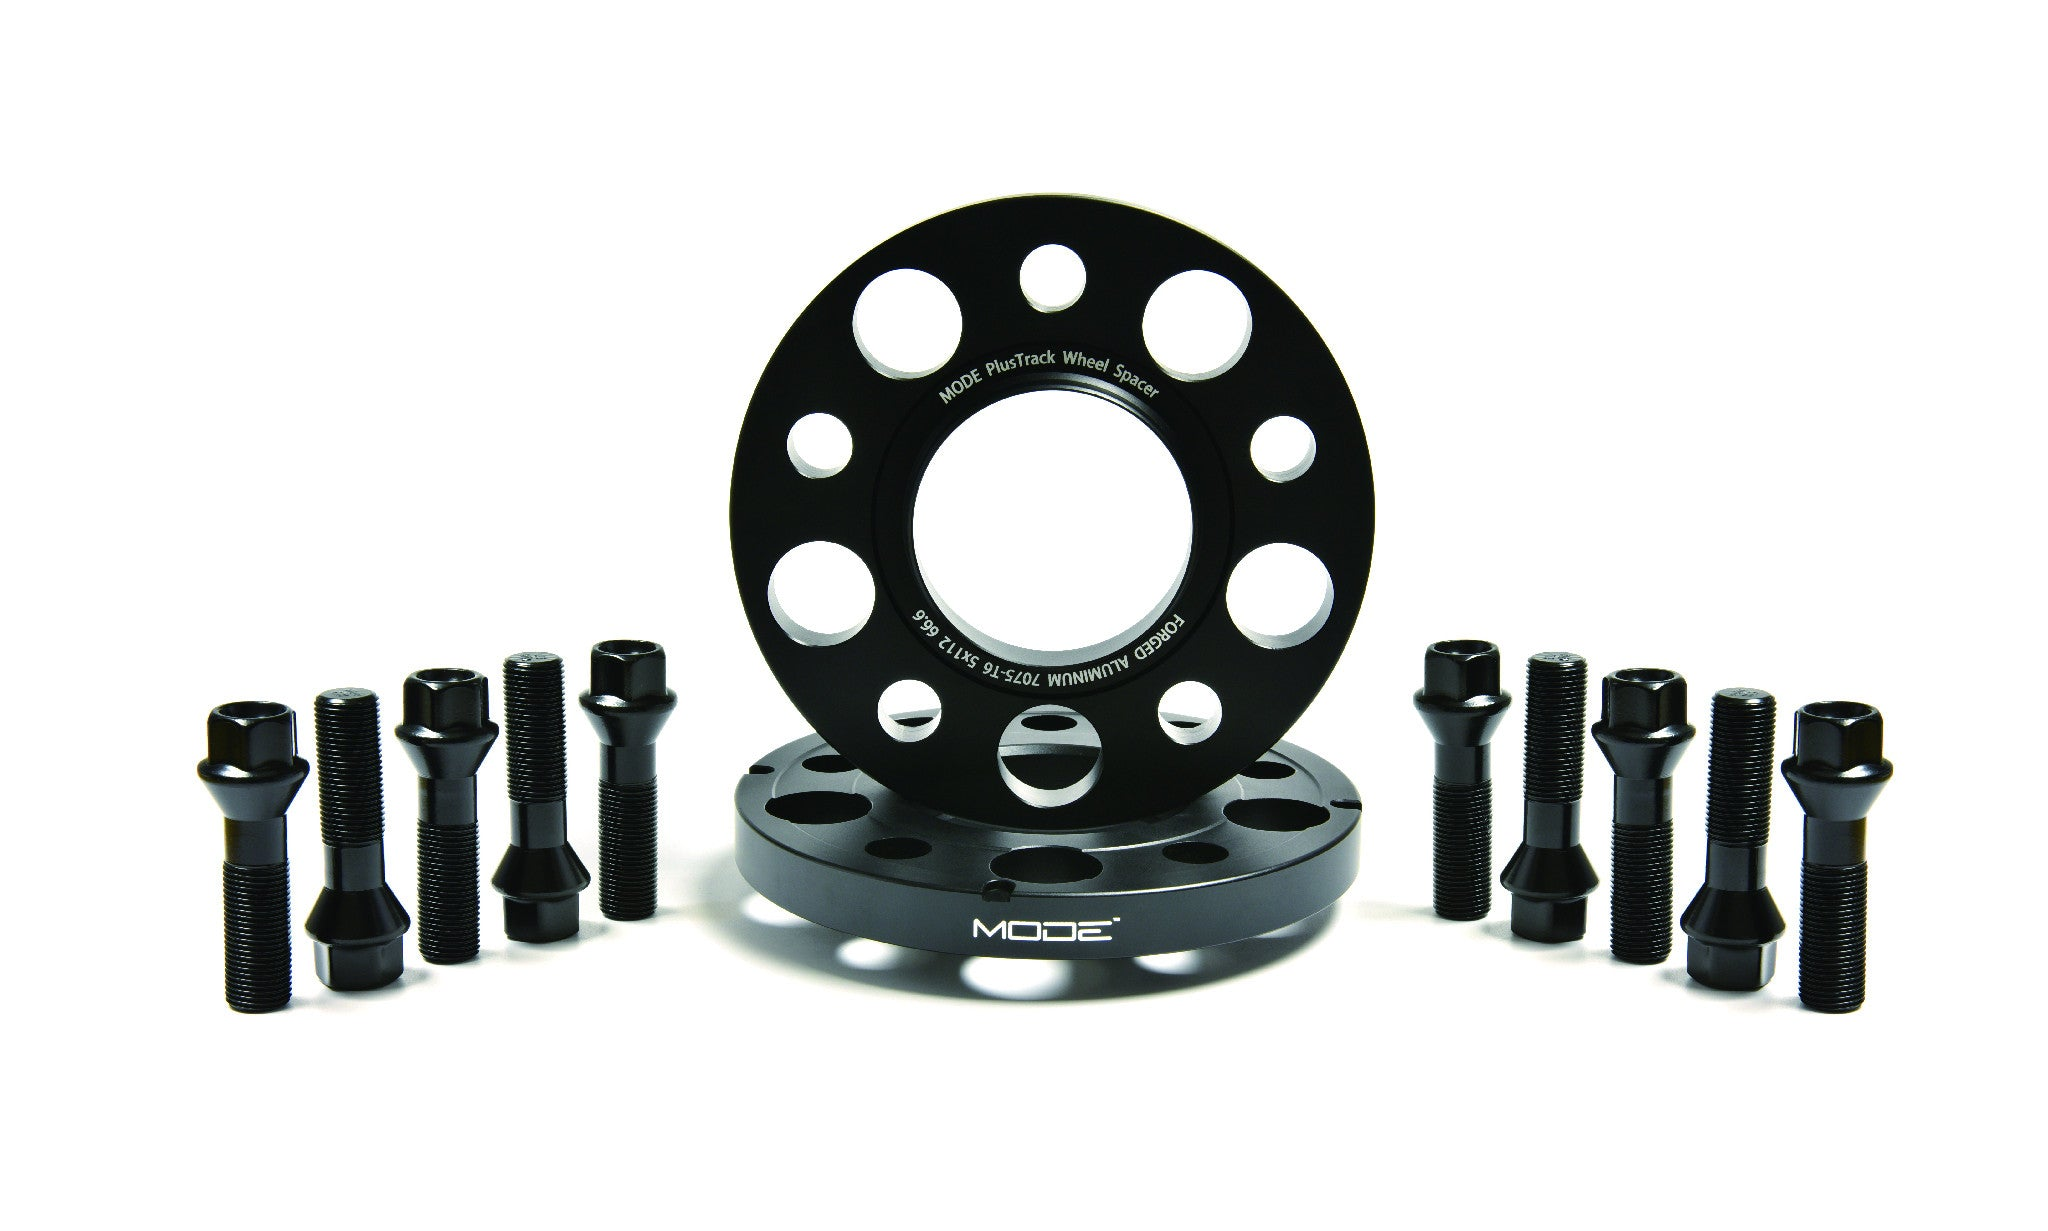 MODE PlusTrack Wheel Spacer Kit 18mm MINI Cooper - MODE Auto Concepts